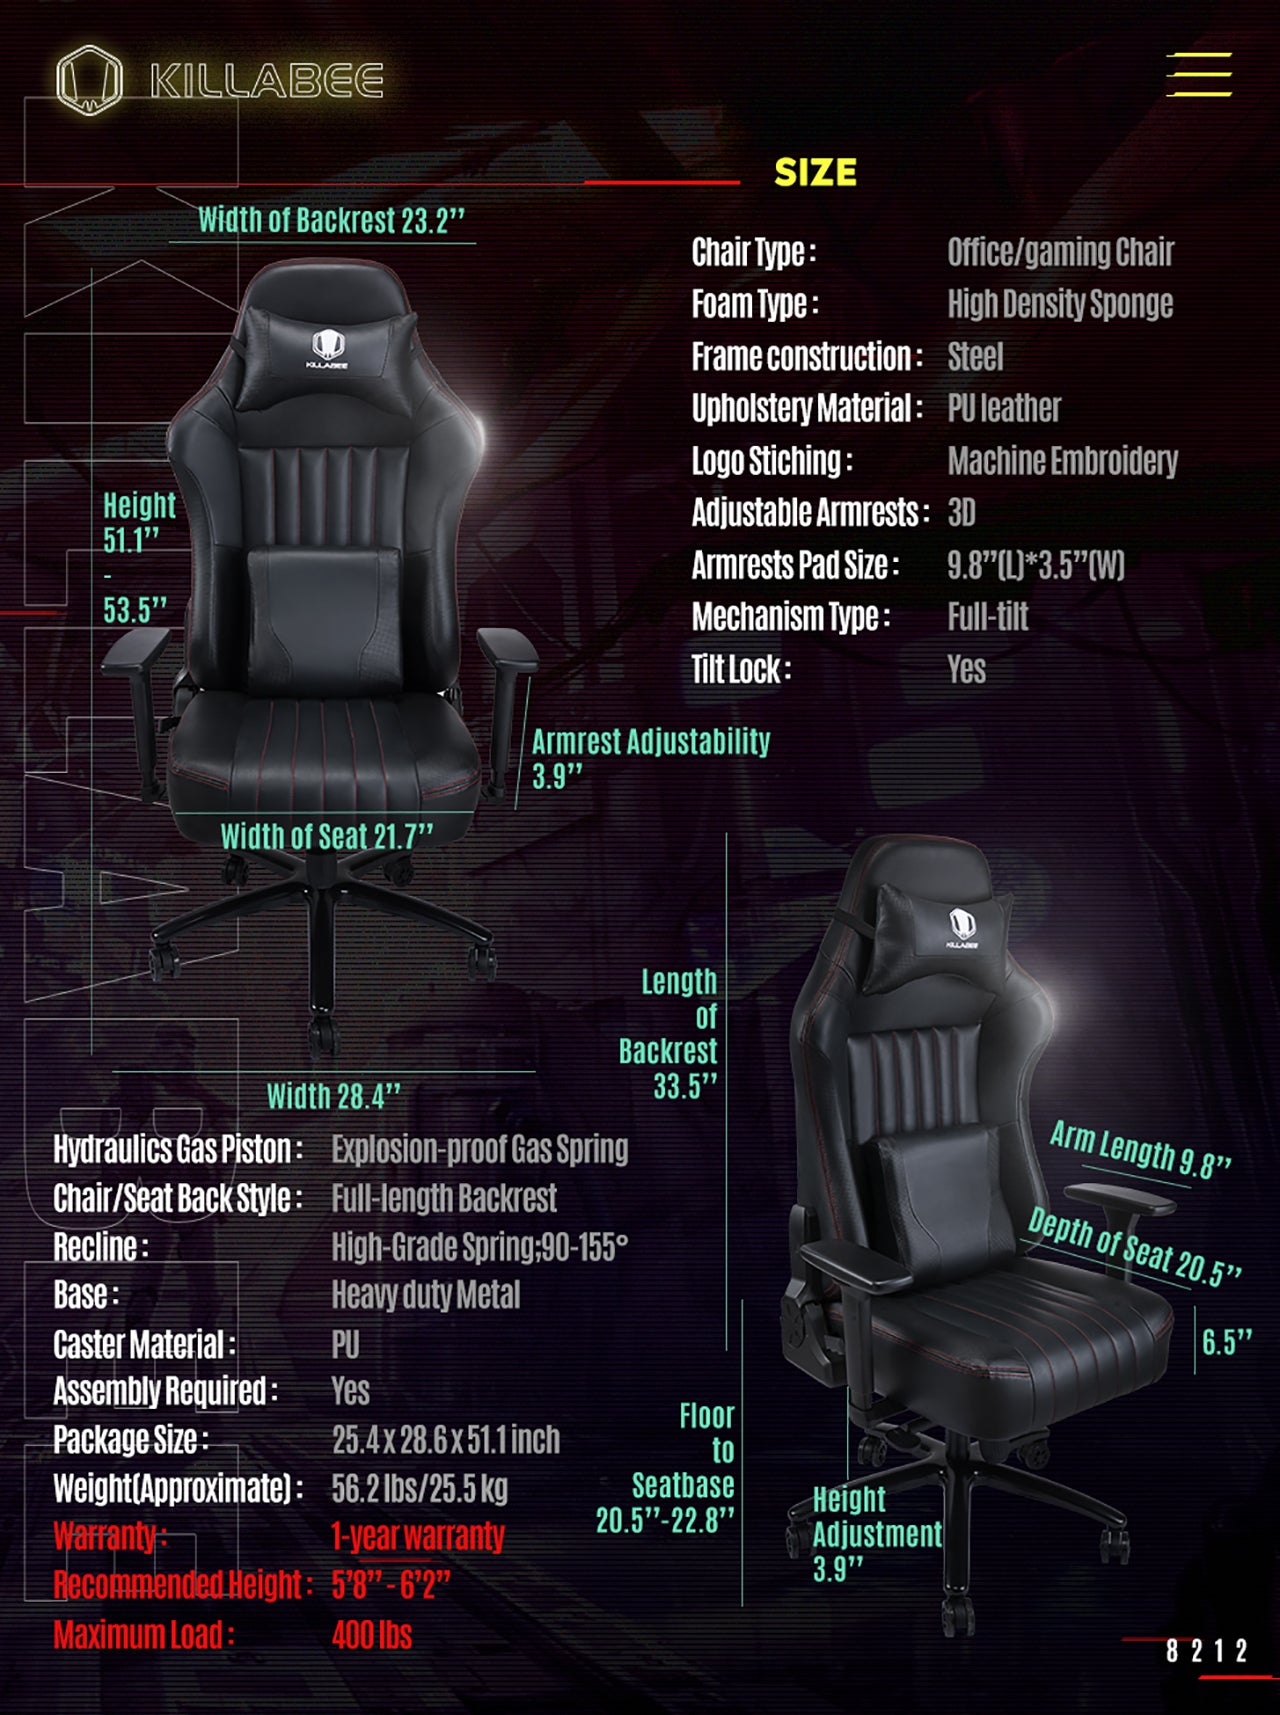 KILLABEE BIG AND TALL GAMING CHAIR 8212 BLACK SPECIFICATION